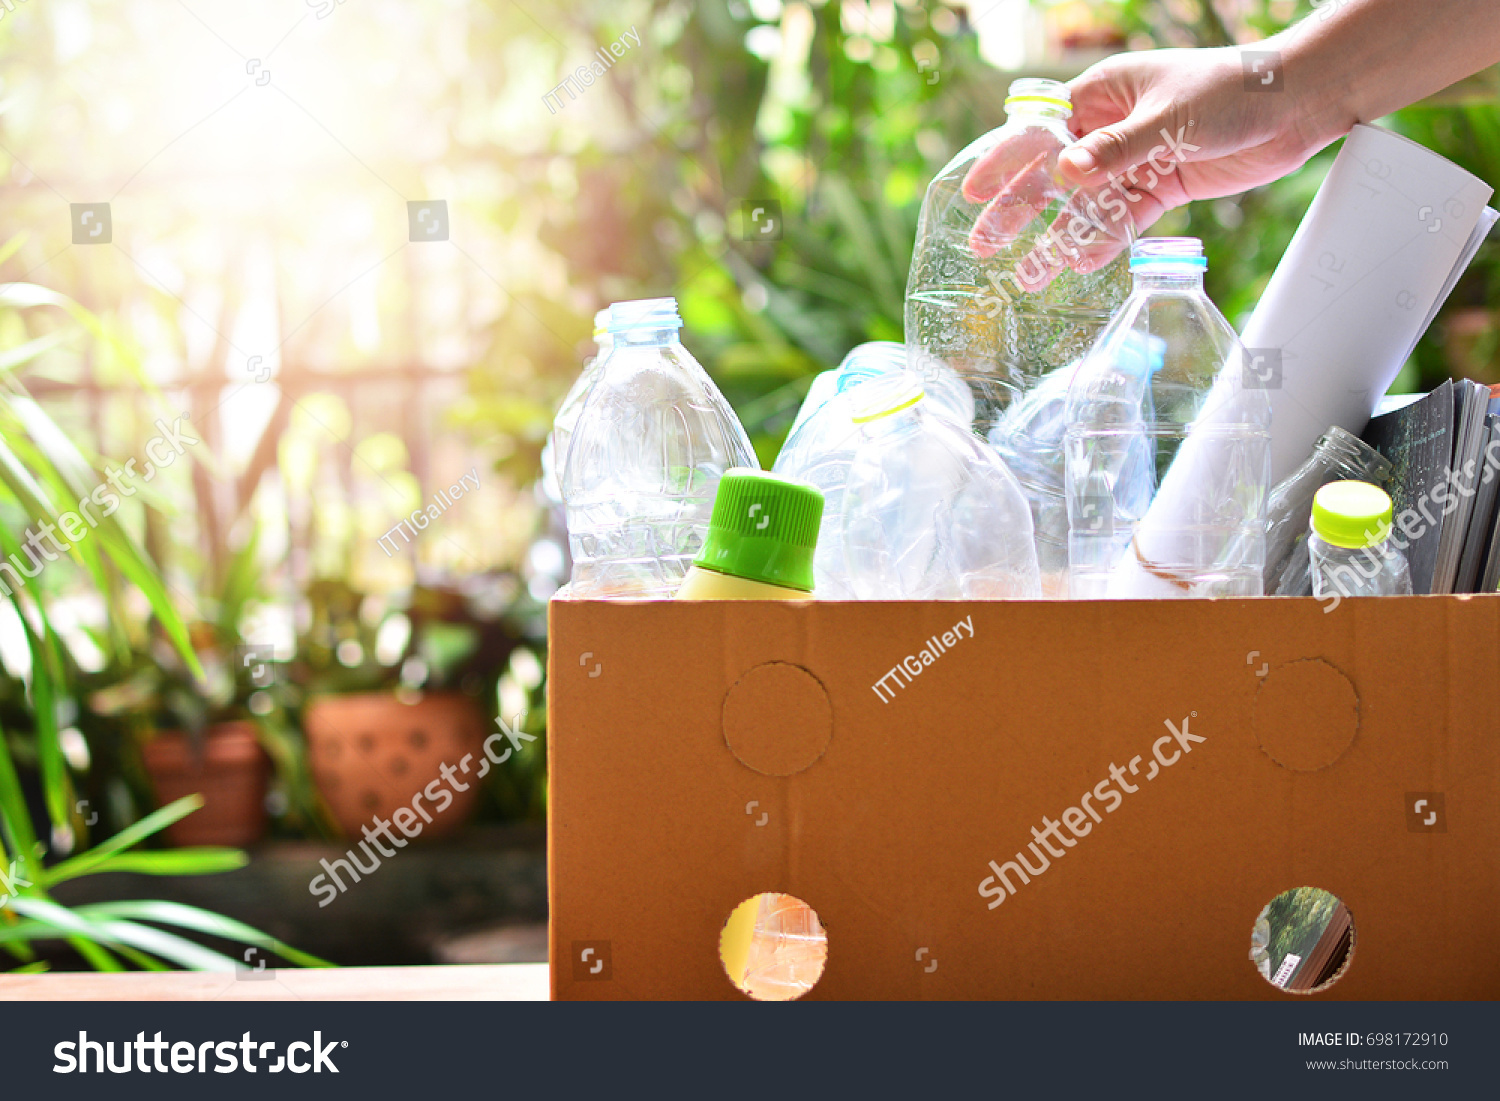 plastic bottle garbage for recycling concept reuse  #698172910